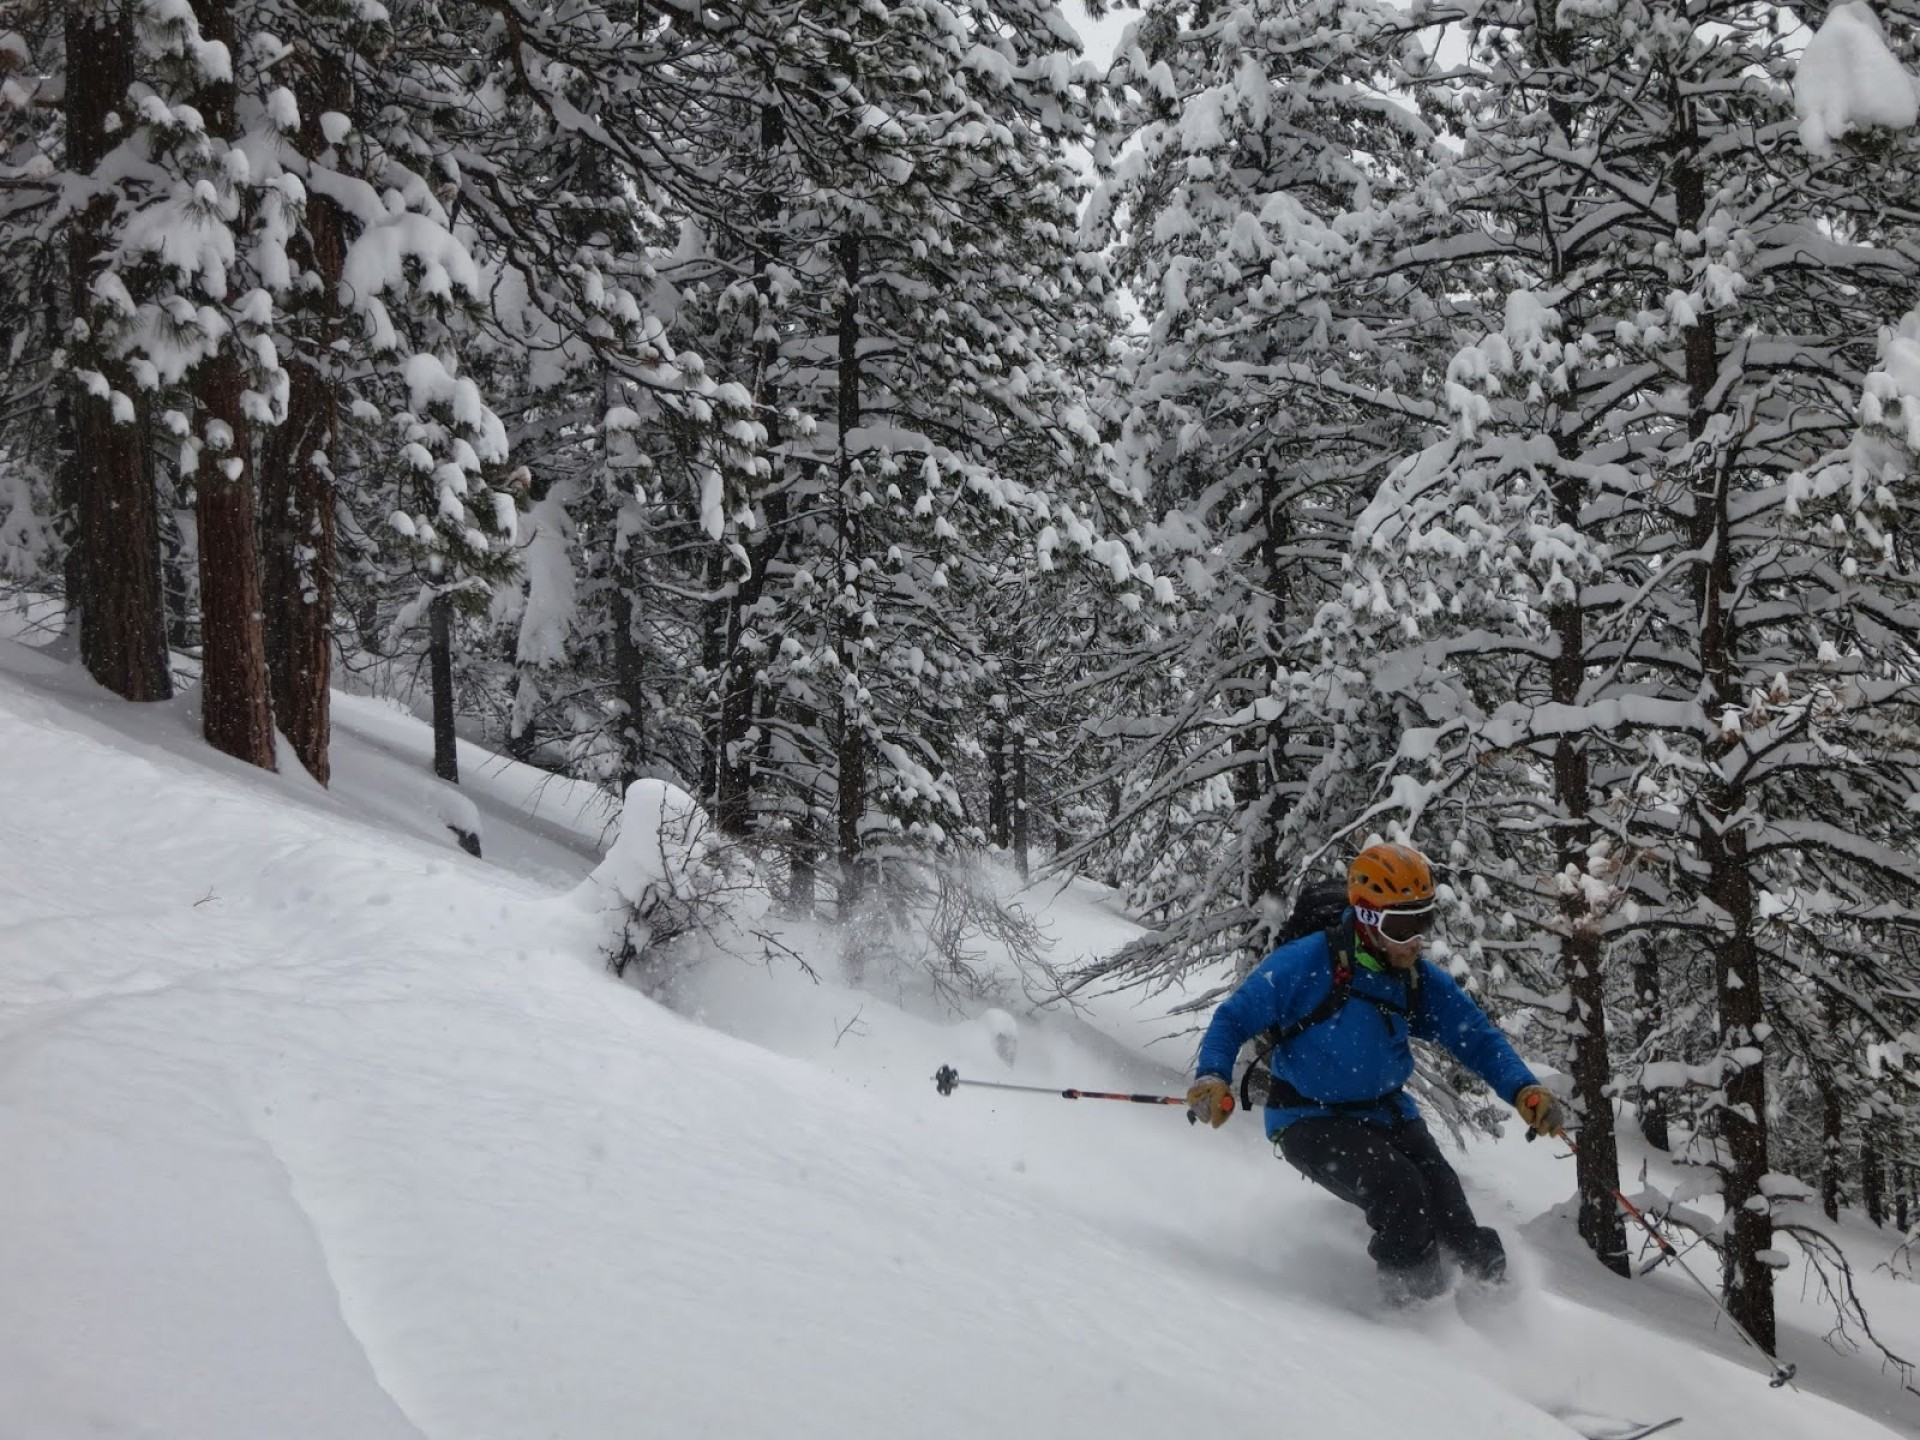 Voile Vector Ski Review: Voile Charger Review Best Value In